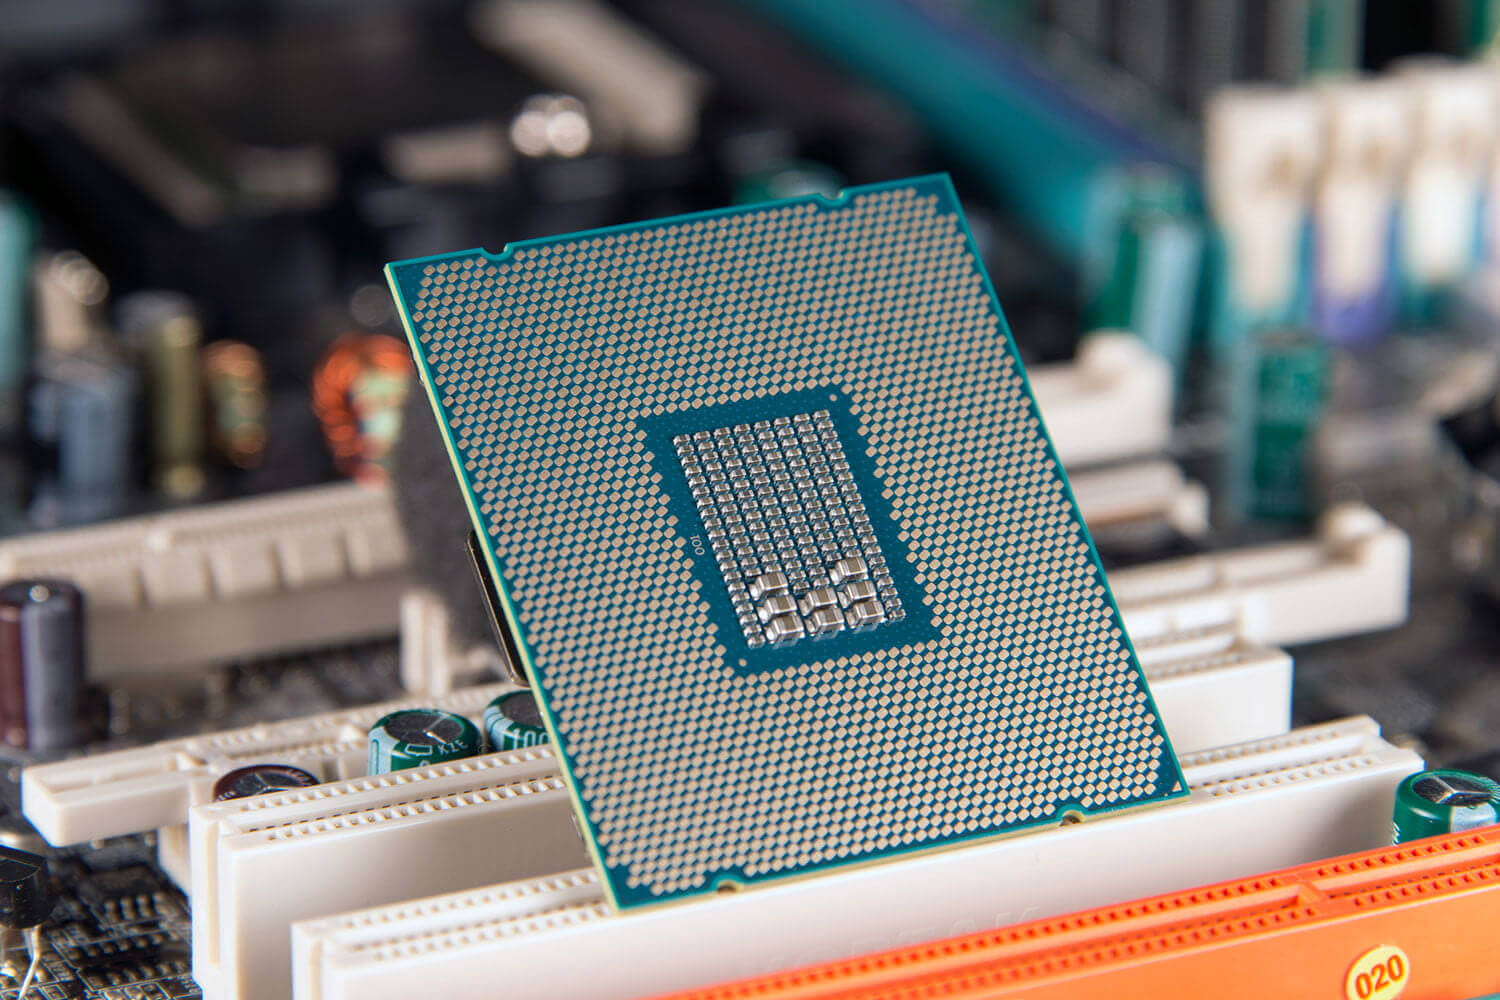 Intel Core i7-9700K tips up on Geekbench